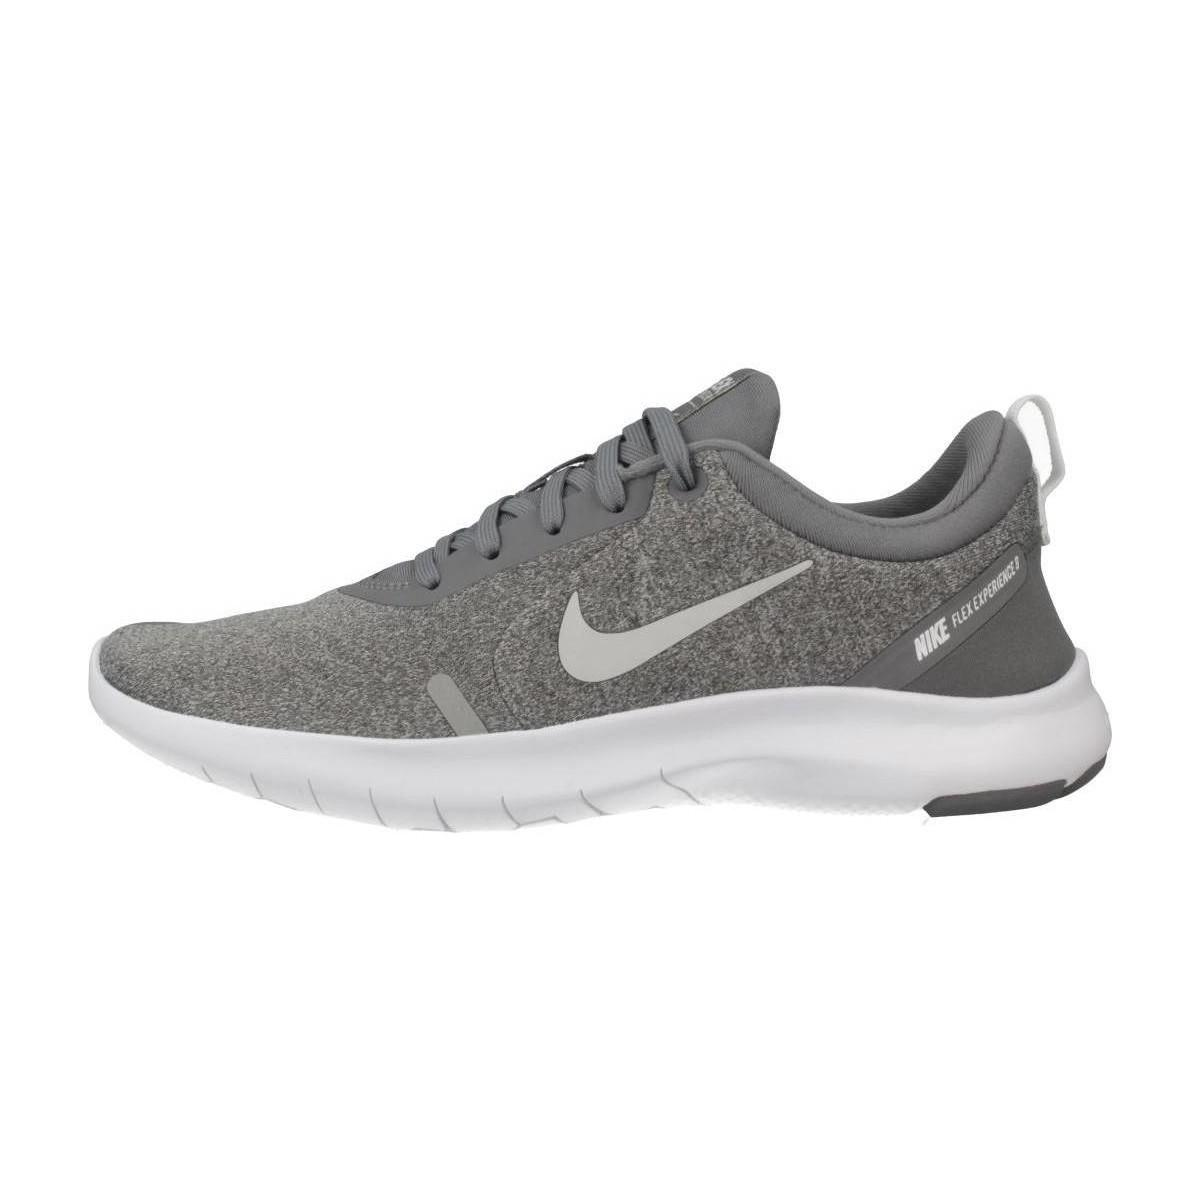 0fd50bd9e2a4a Nike 011 Women s Shoes (trainers) In Grey in Gray - Lyst